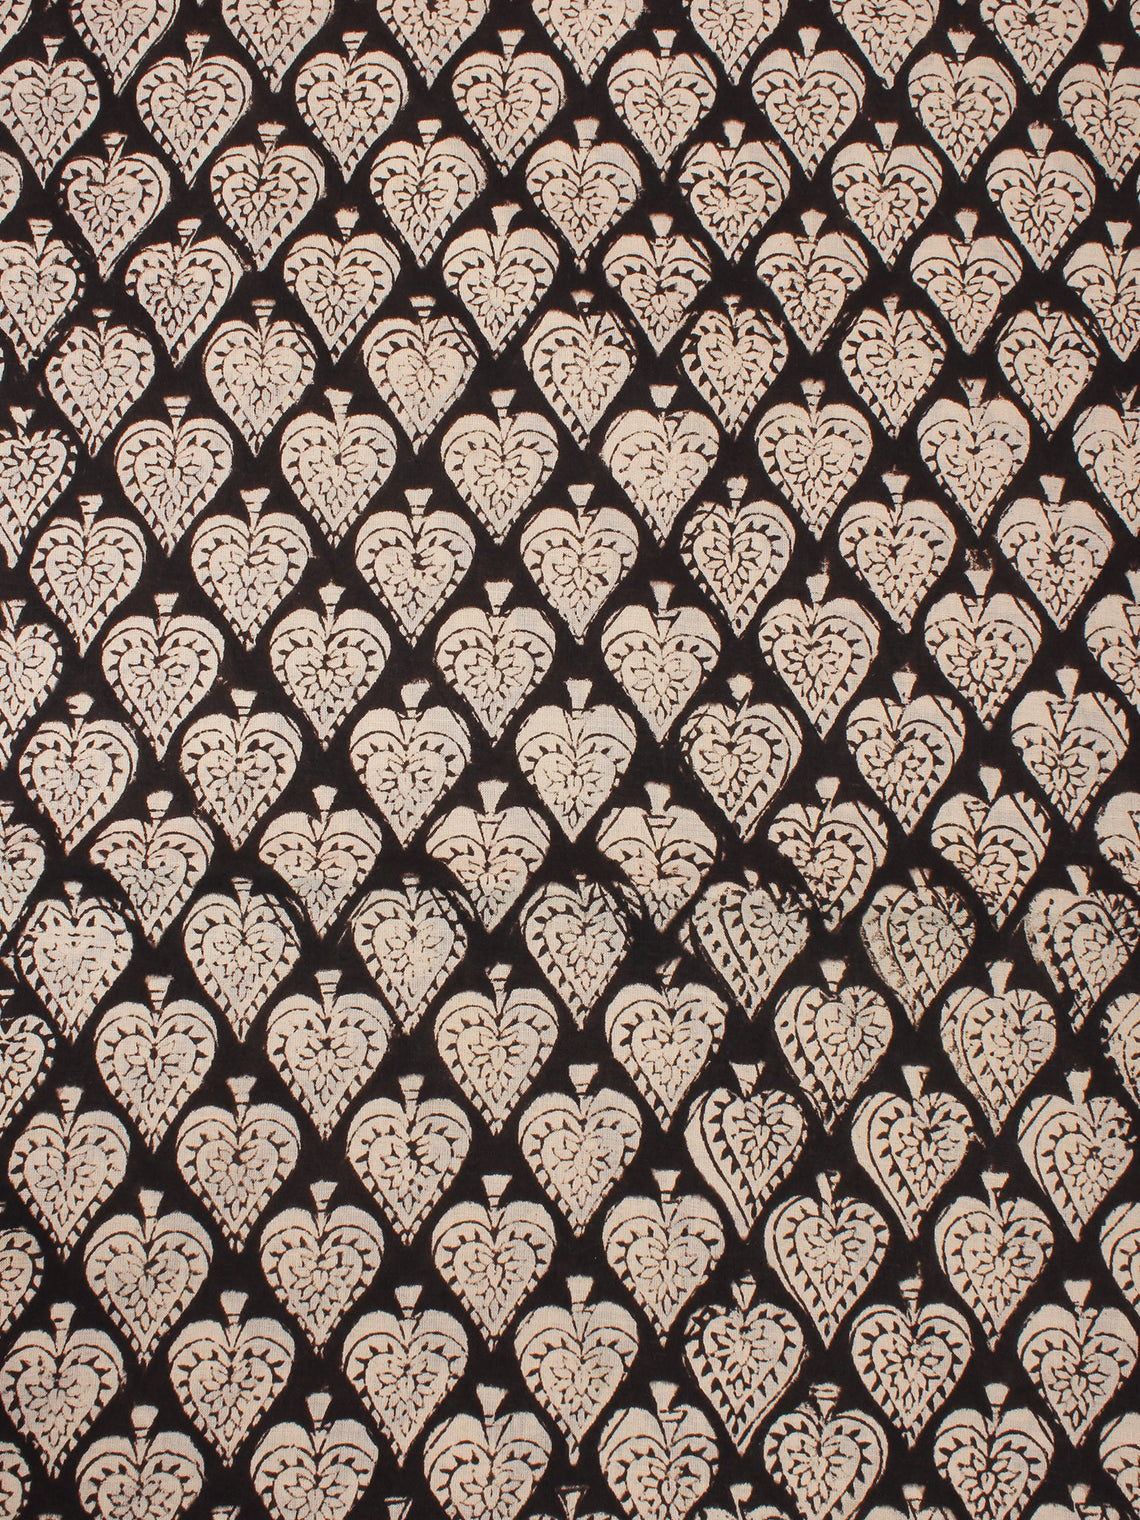 Beige Black Natural Dyed Hand Block Printed Cotton Fabric Per Meter - F0916313